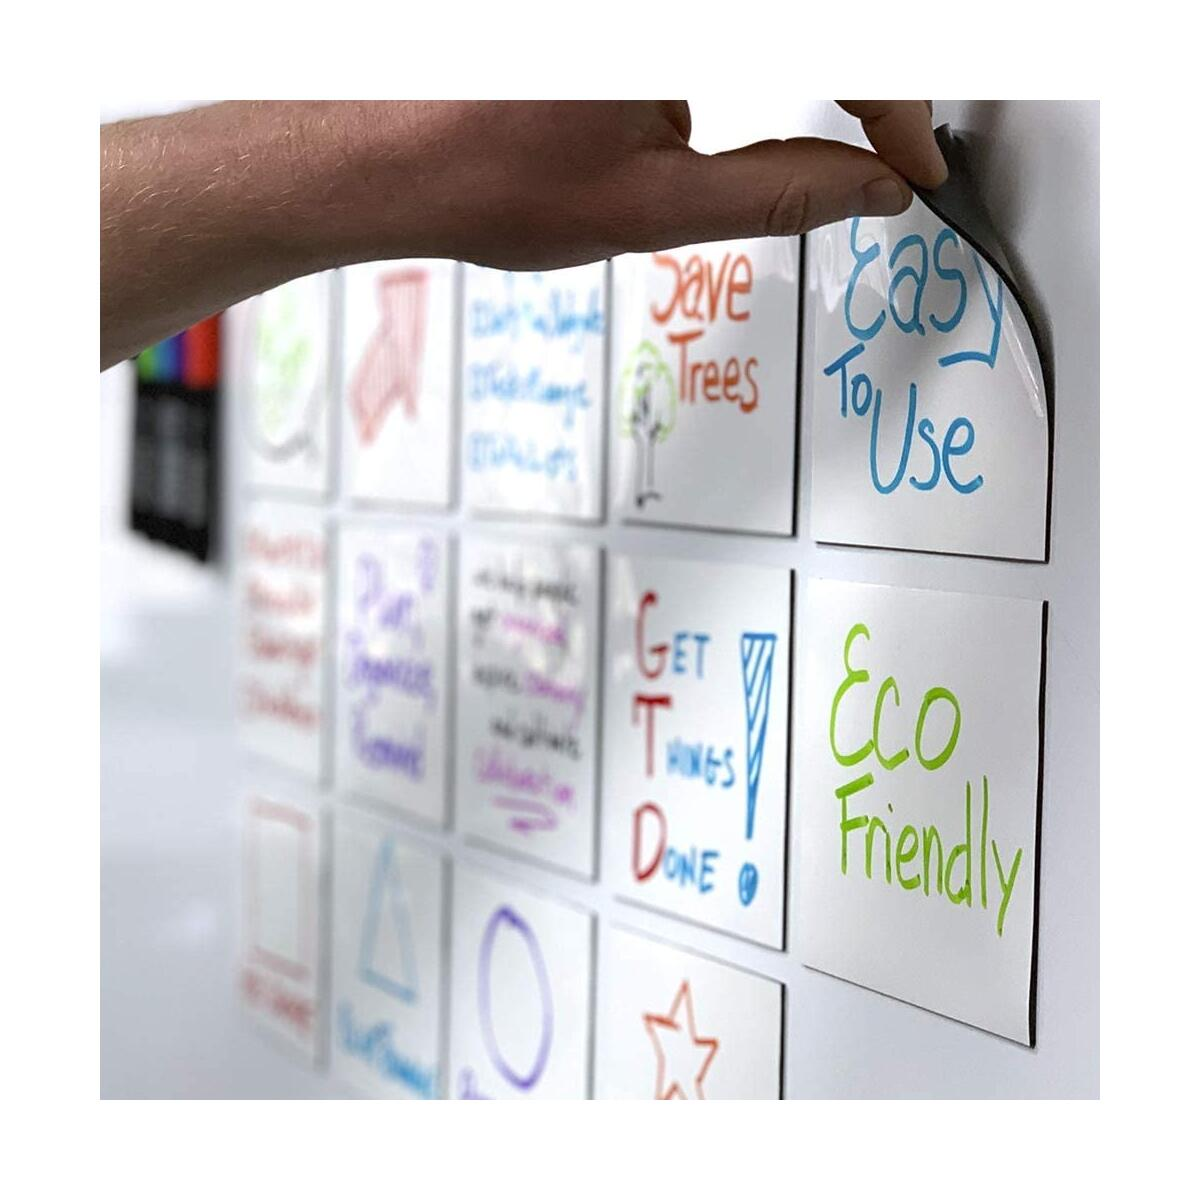 mcSquares 4x4 Dry-Erase Sticky Notes | 6-Pack Reusable White Board Stickers with Free Tackie Marker…